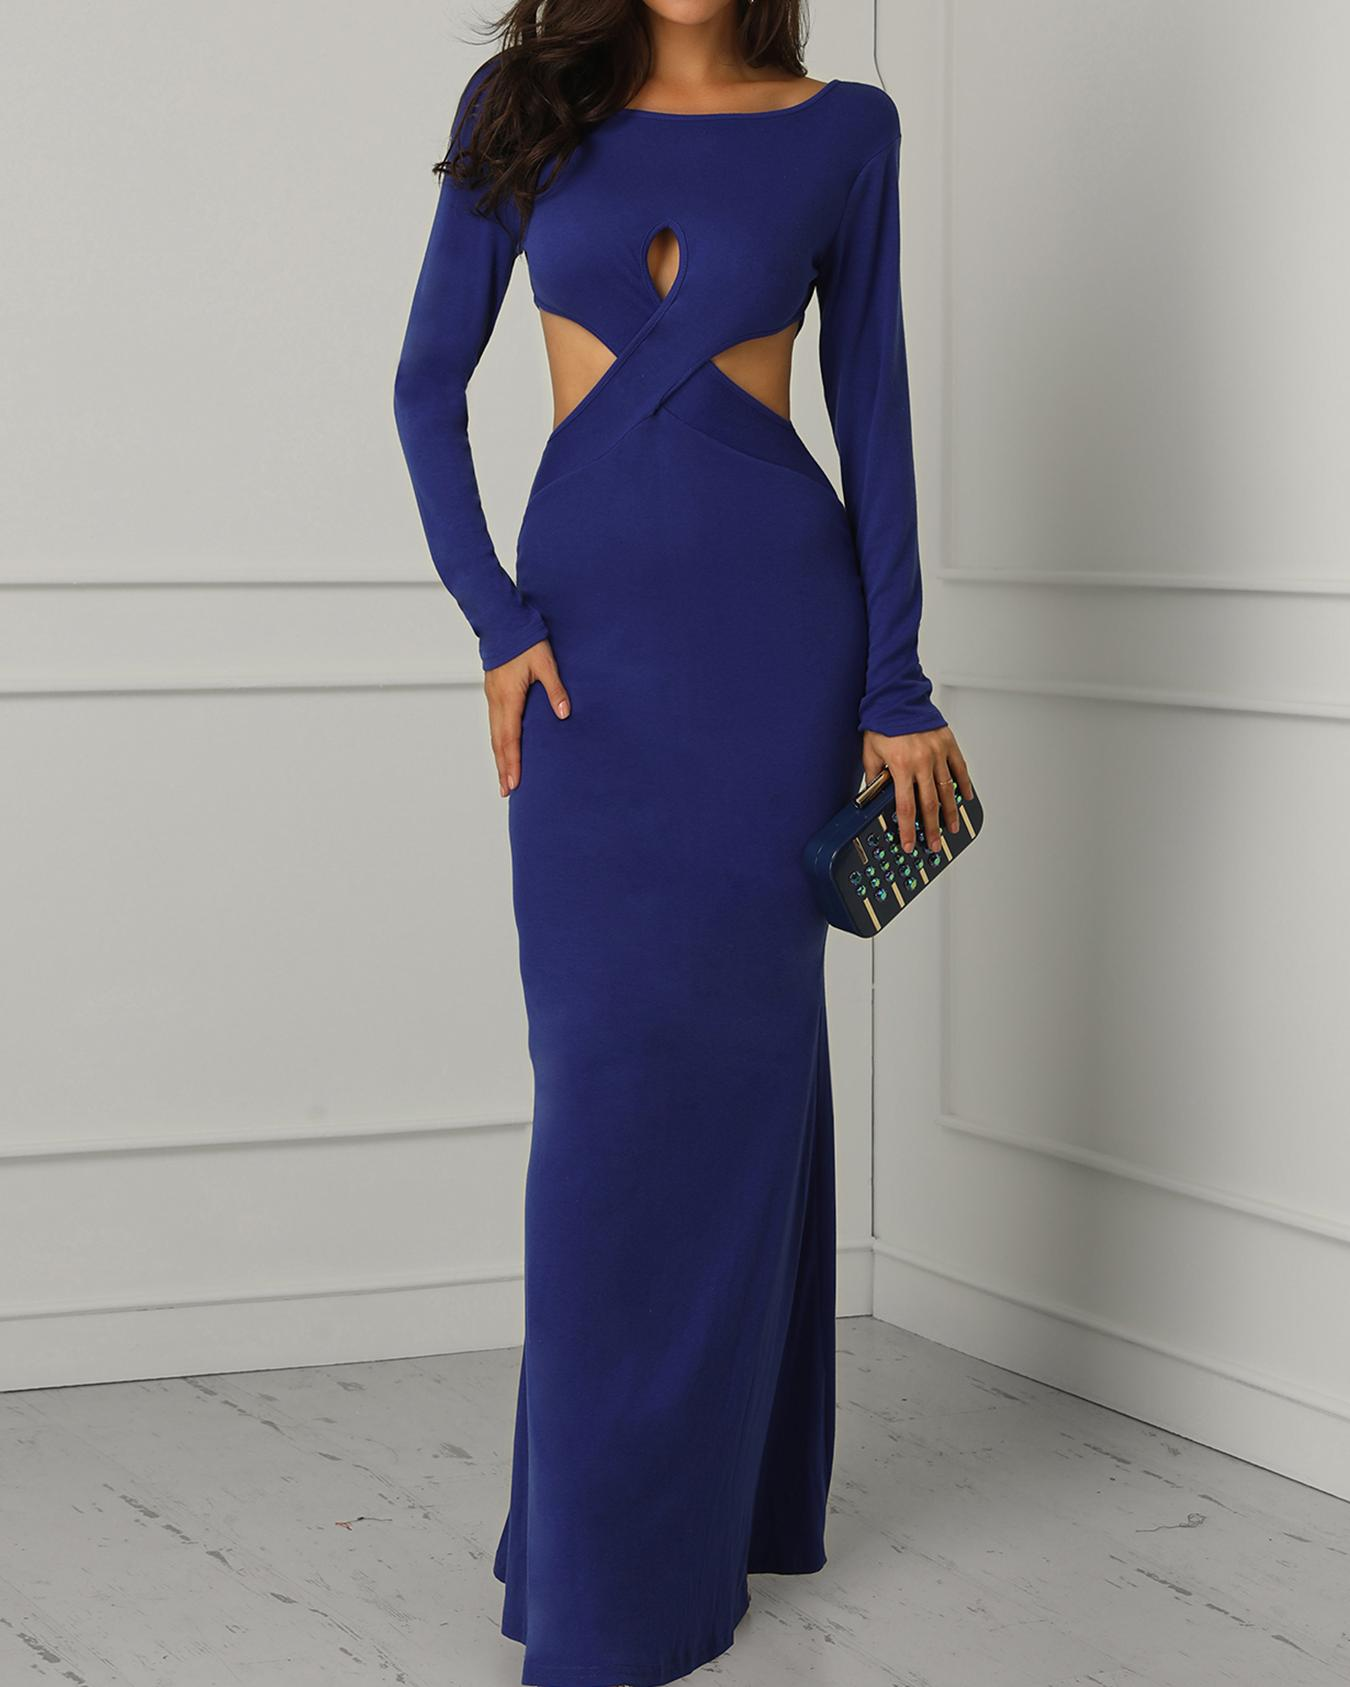 Solid Crisscross Cutout Backless Evening Dress фото